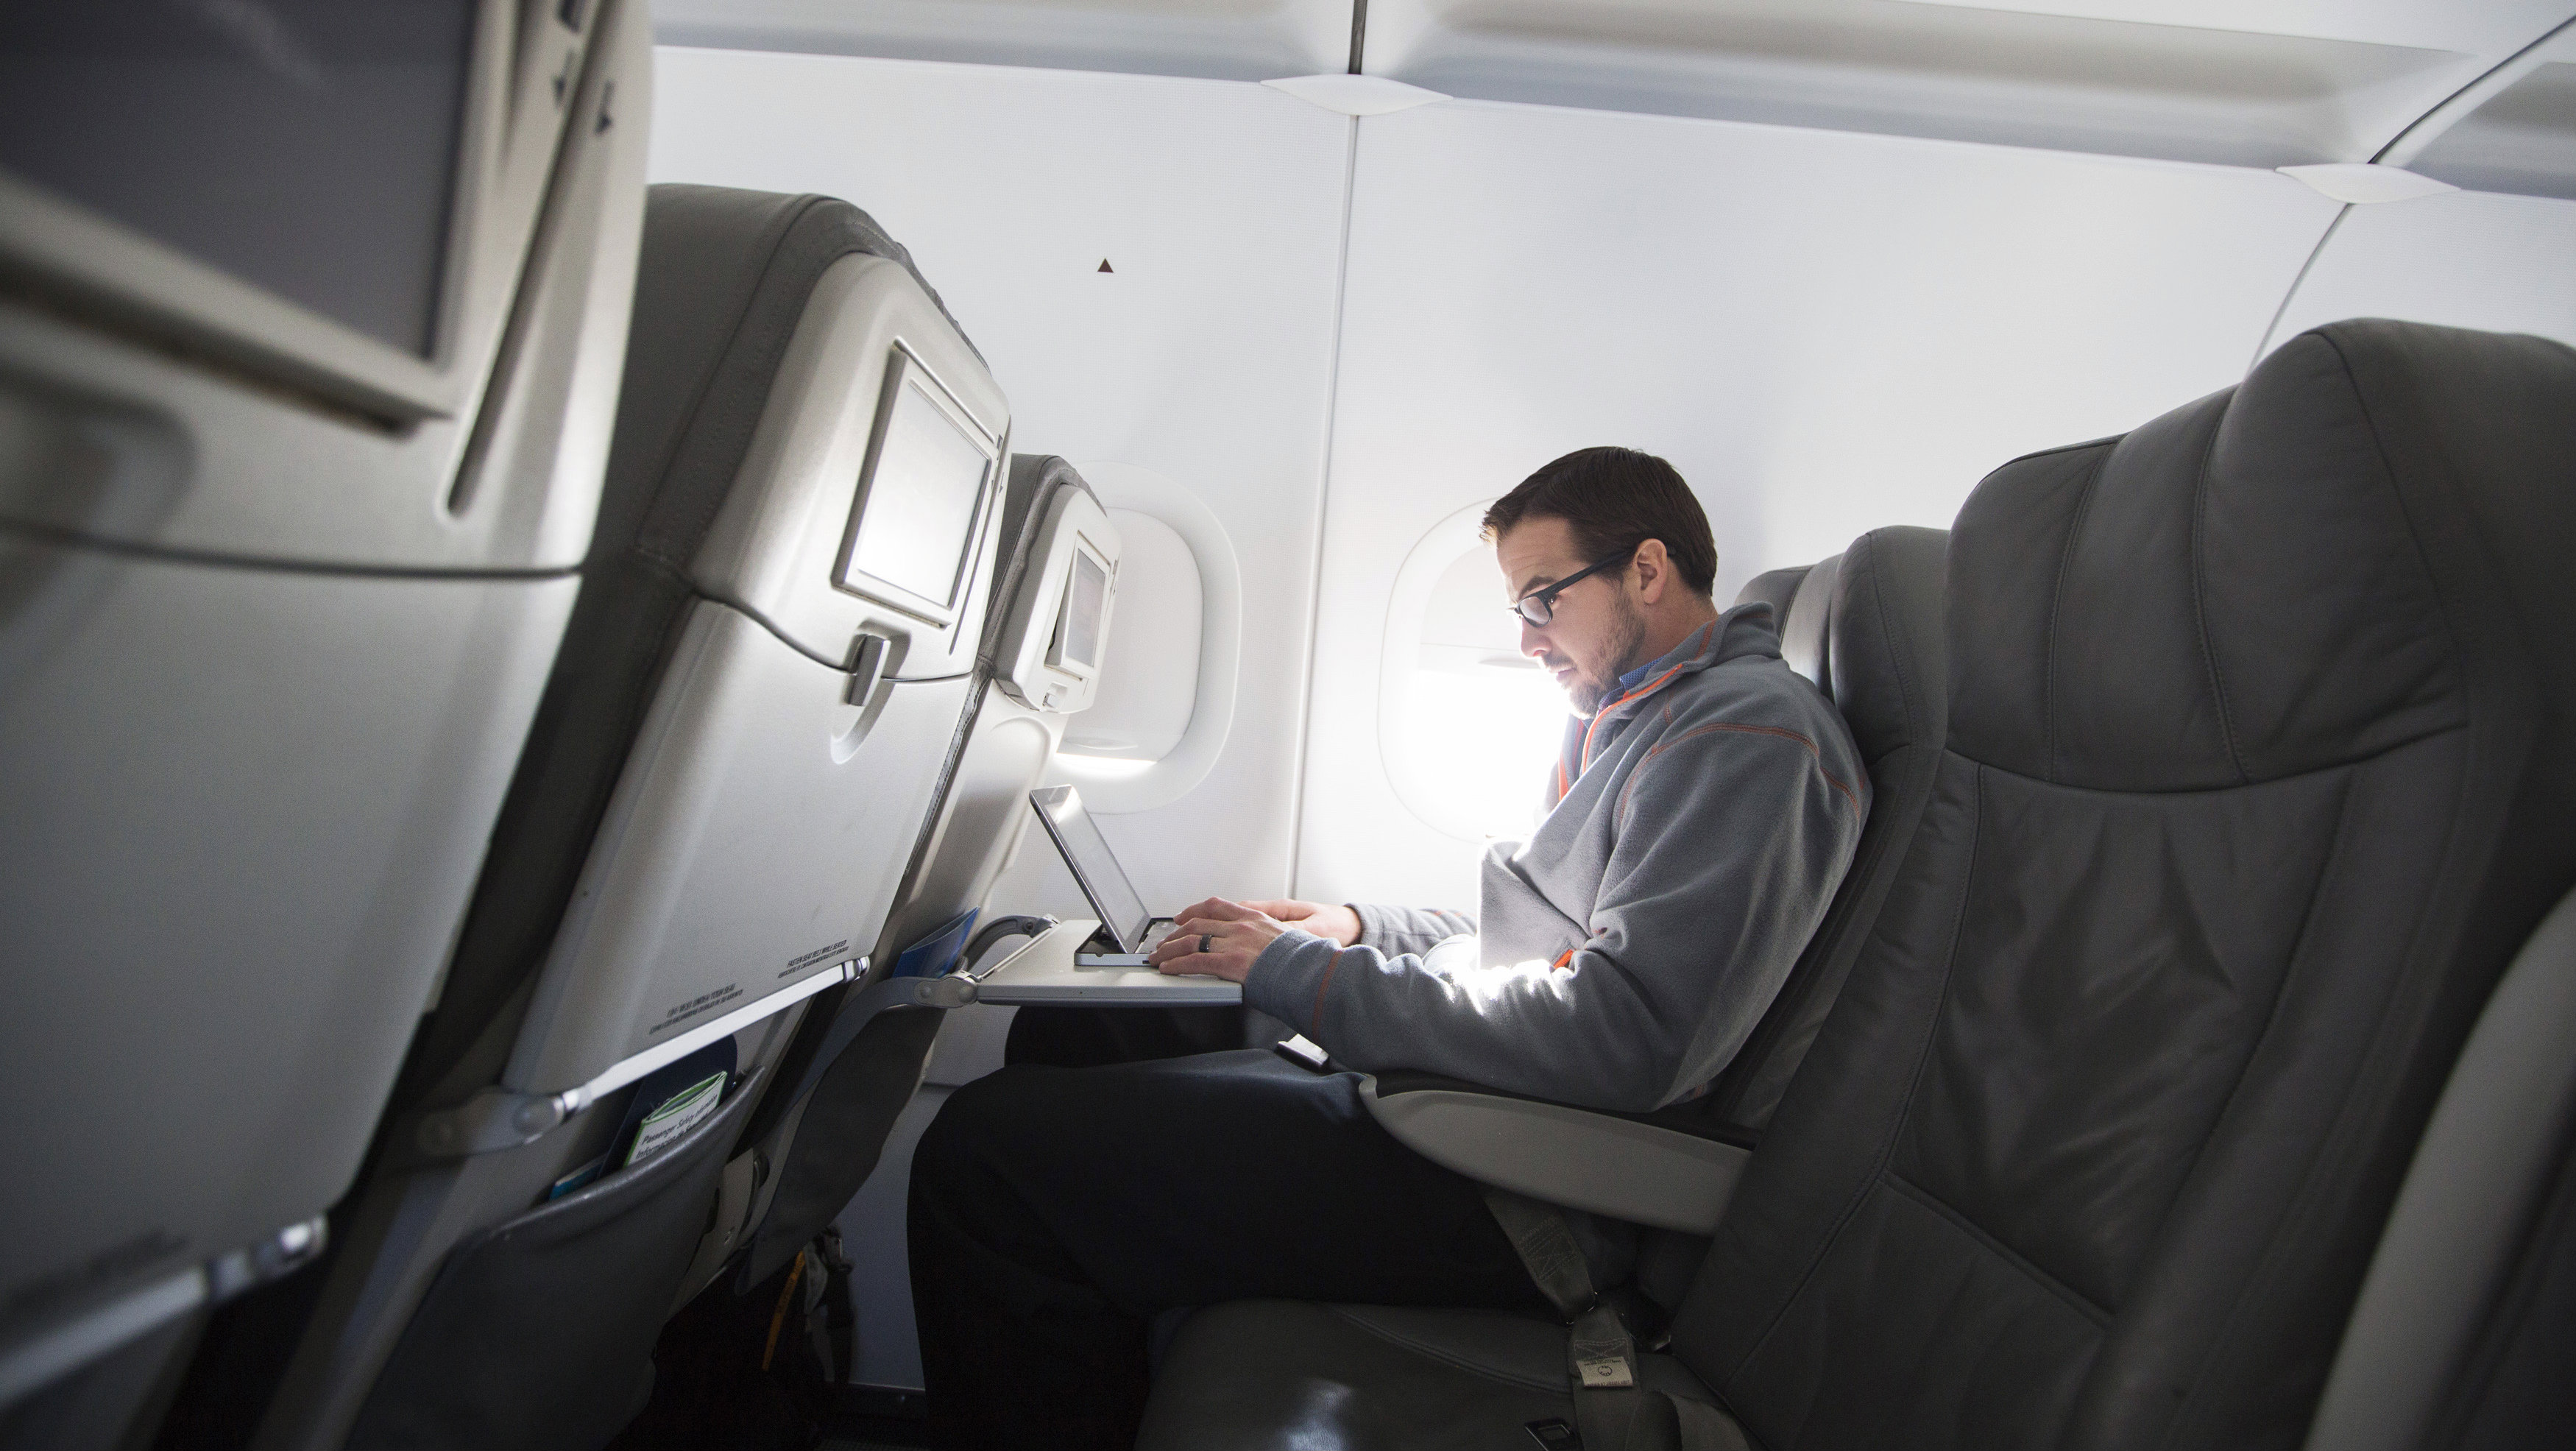 A man uses his laptop to test a new high speed inflight Internet service named Fli-Fi while on a special JetBlue media flight out of John F. Kennedy International Airport in New York December 11, 2013. Wi-Fi in the sky is taking off, promising much better connections for travelers and a bonanza for the companies that sell the systems. With satellite-based Wi-Fi, Internet speeds on jetliners are getting lightning fast. And airlines are finding that travelers expect connections in the air to rival those on the ground - and at lower cost. Picture taken December 11, 2013. To match Analysis AIRLINES-WIFI/